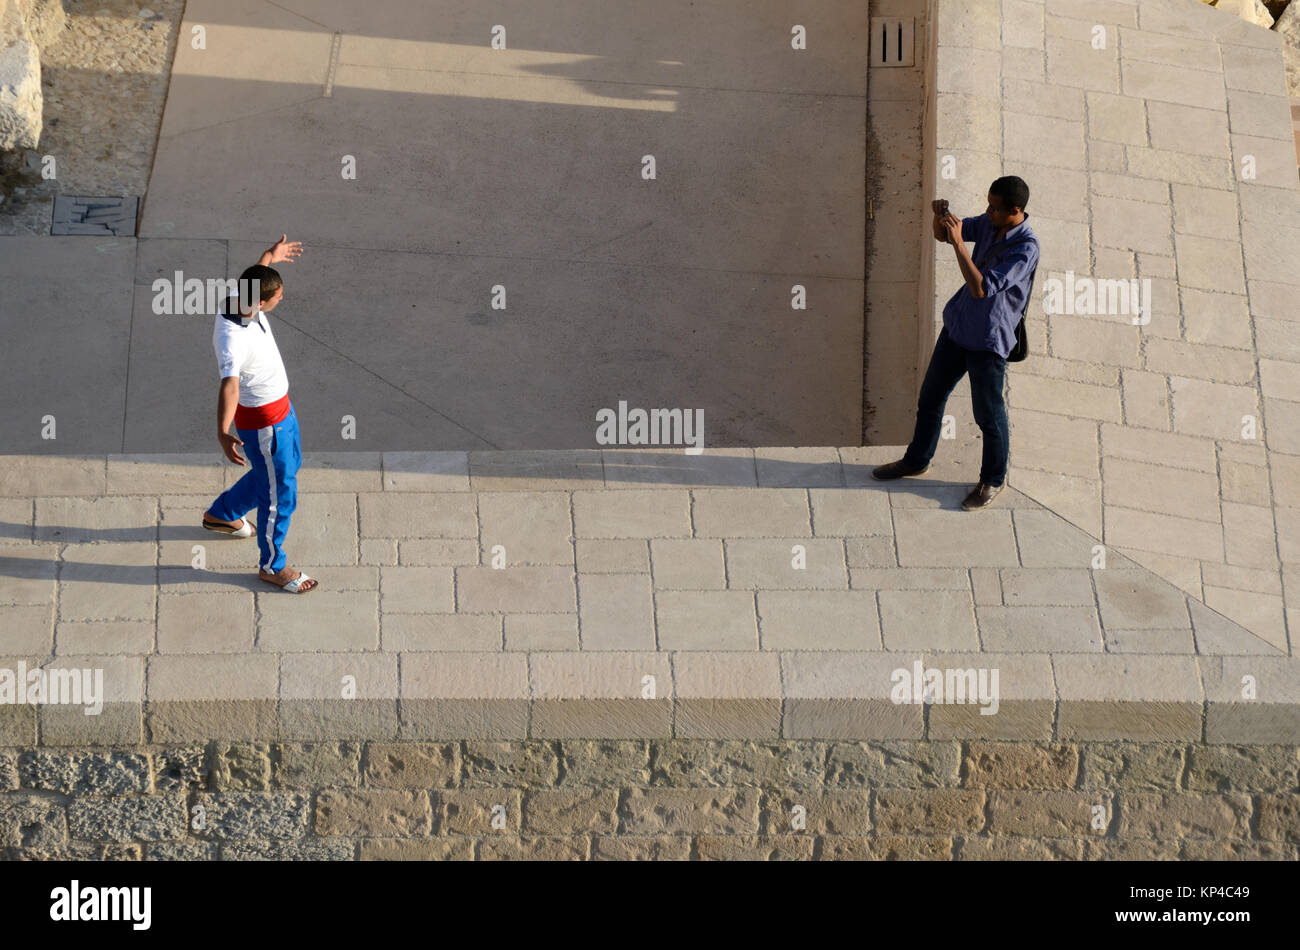 Local Youths Photographing Each Other on the Walls of Fort Saint Jean Marseille Provence france - Stock Image